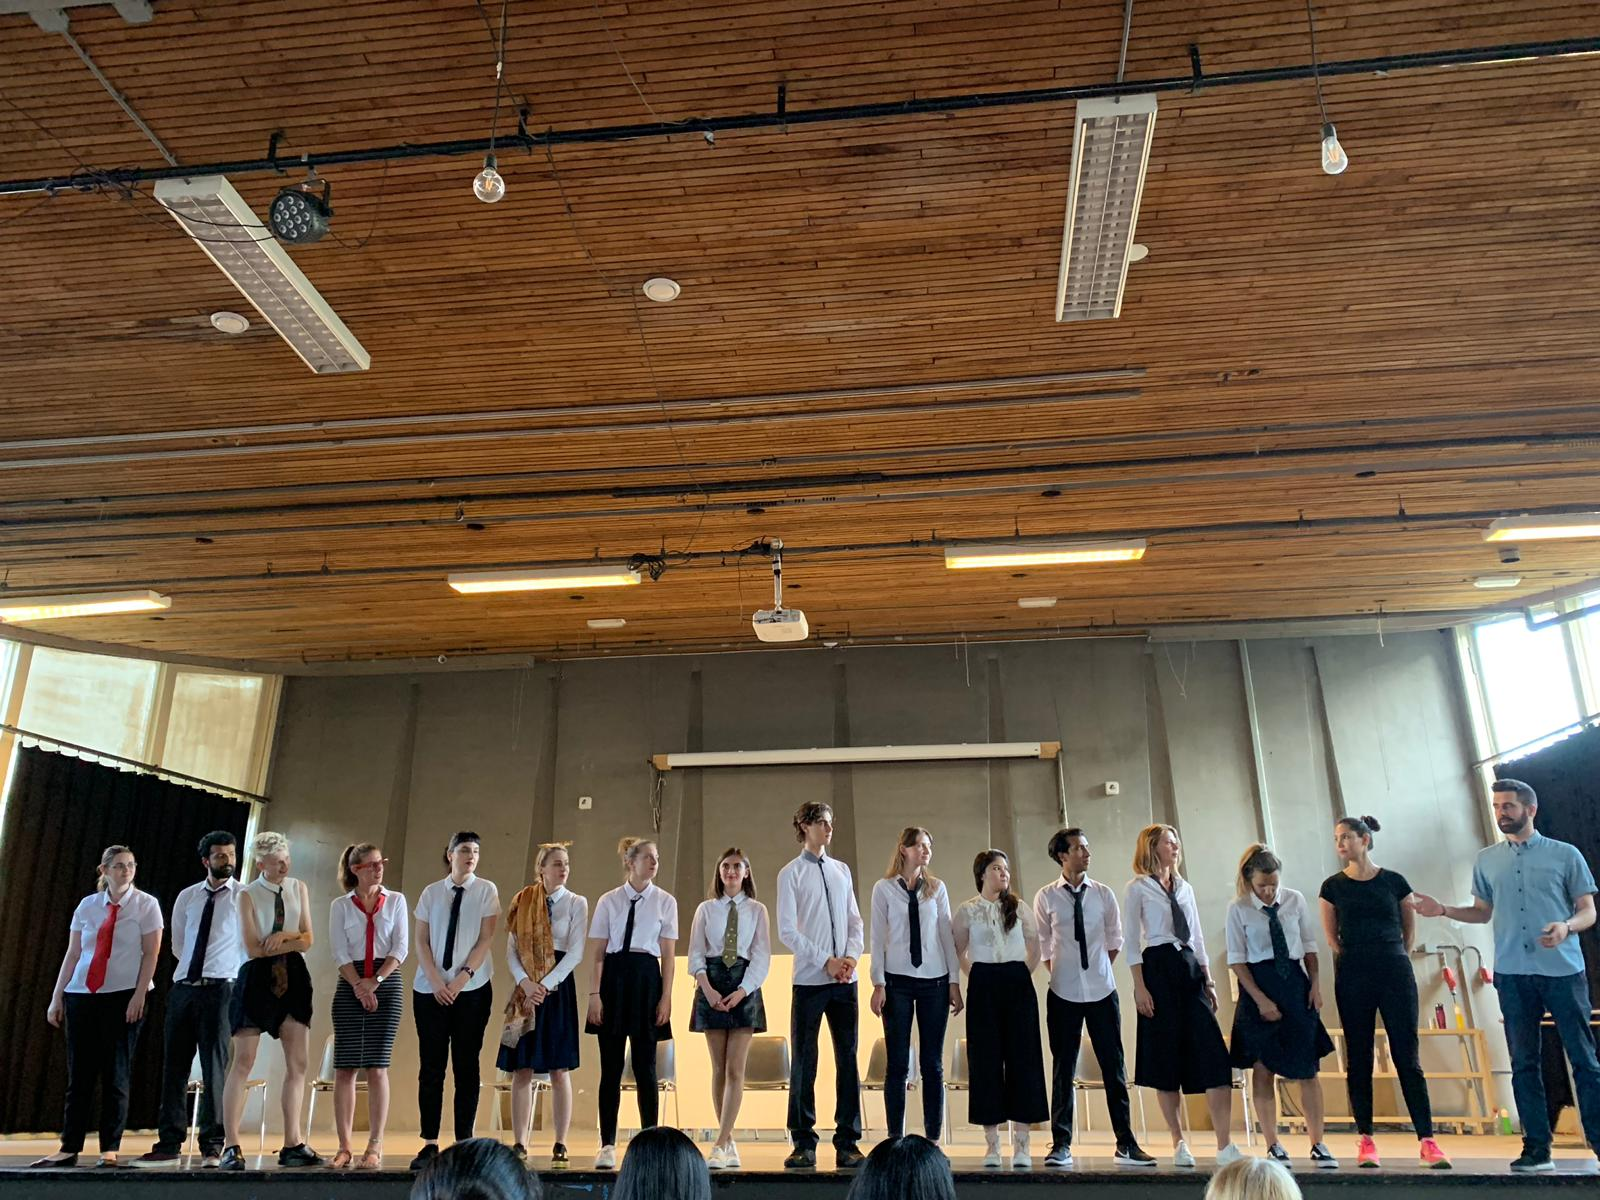 """From the show """"the magic school"""". The actors stand in a row on stage, applauding. Most of them wear a white shirt and tie"""